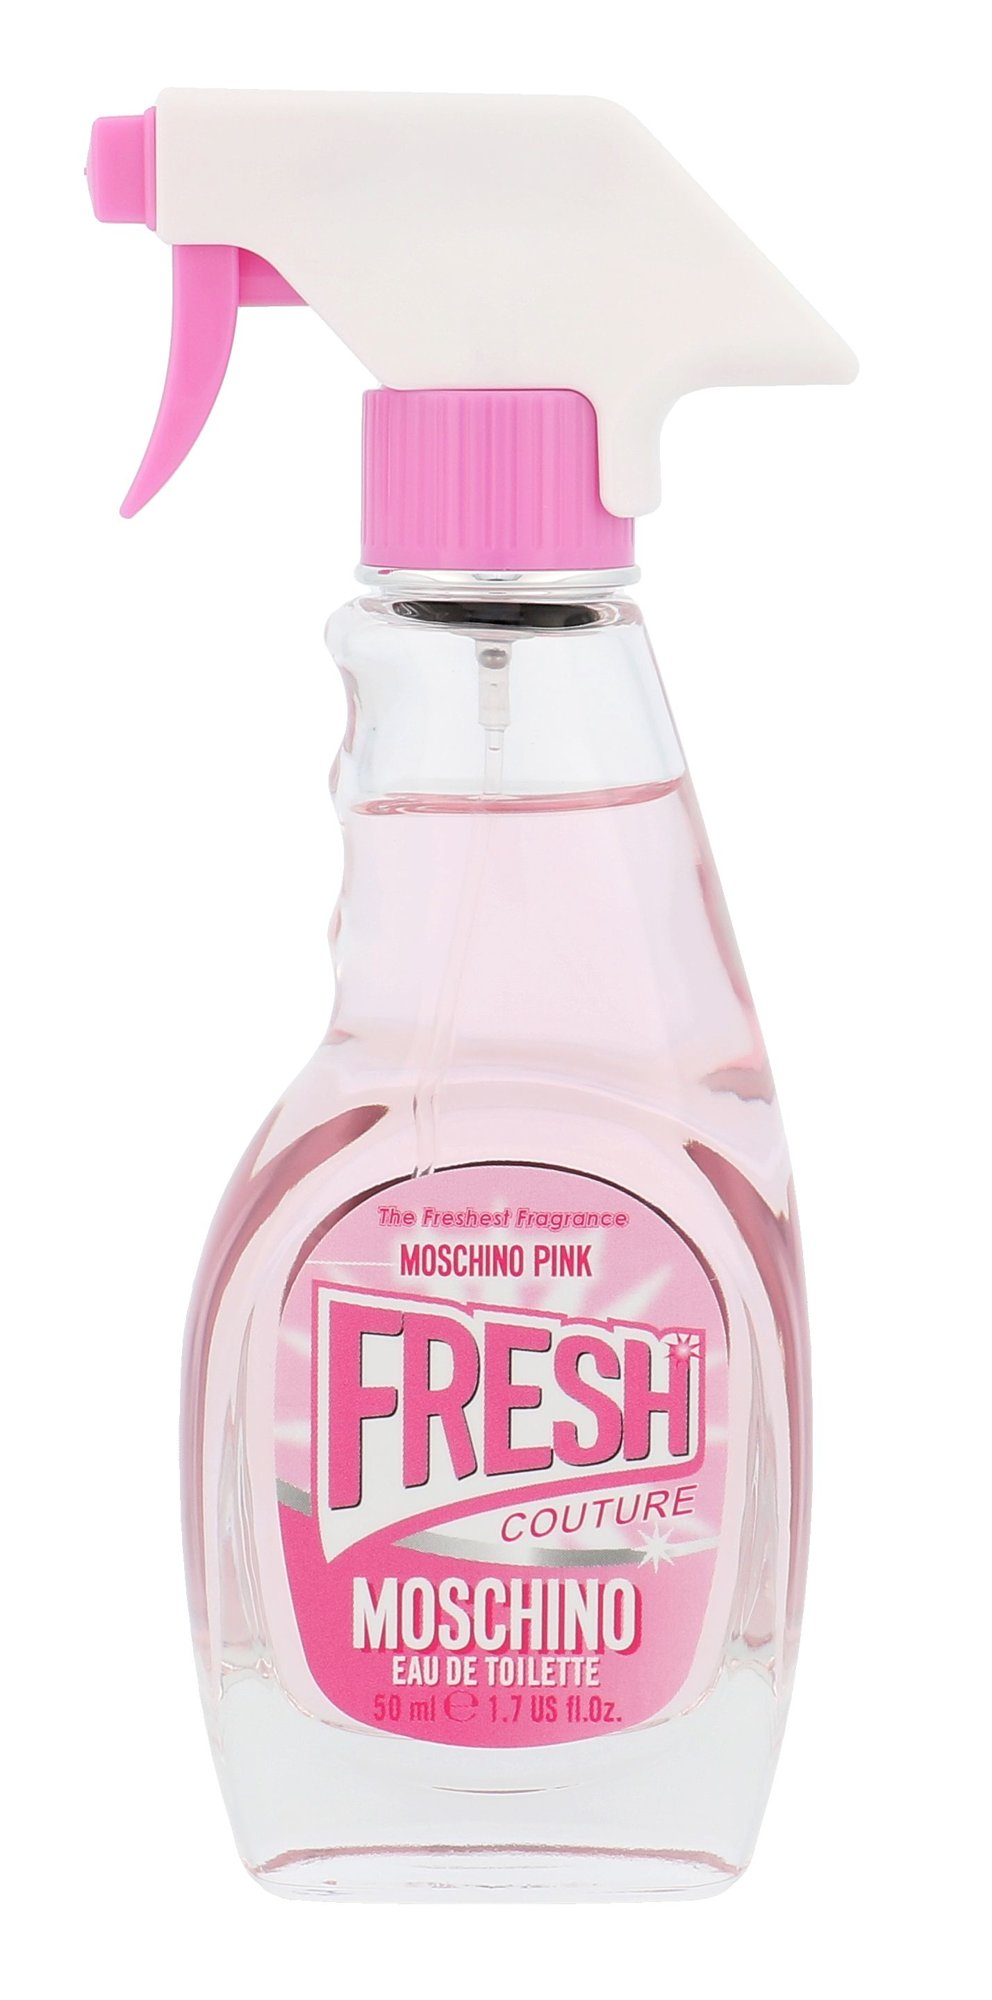 Moschino Fresh Couture EDT 50ml  Pink